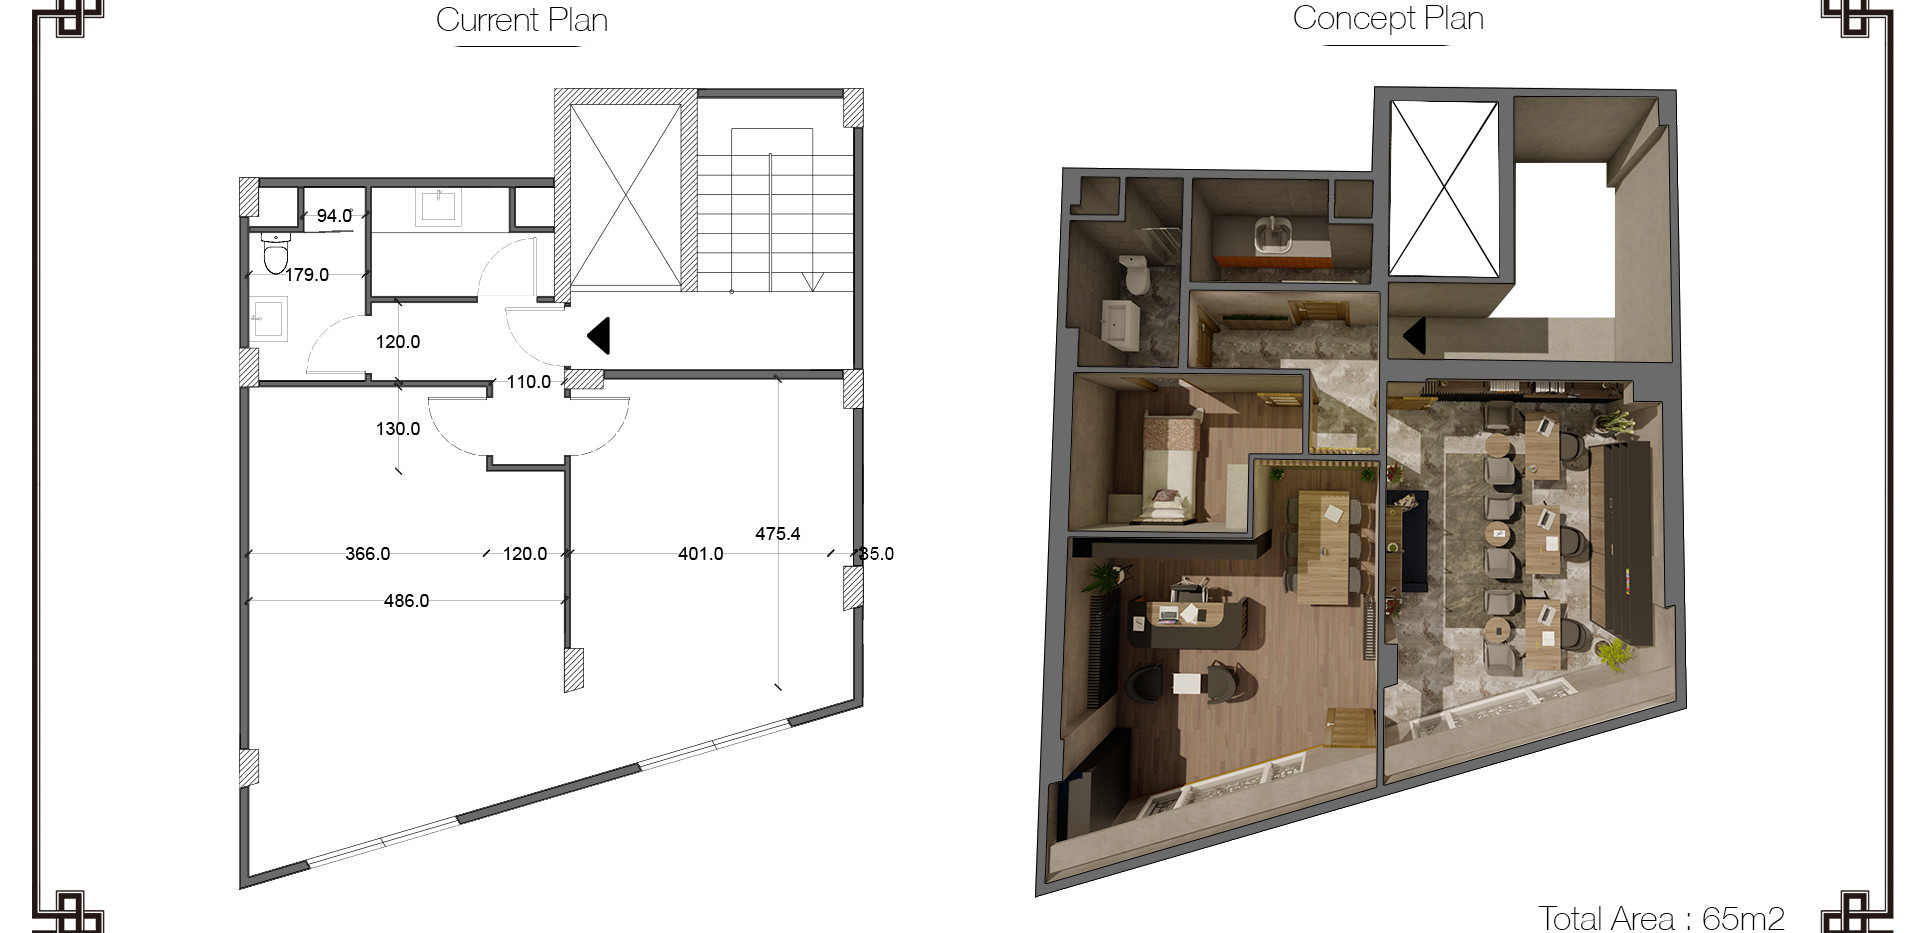 Plan organization for optimizing spaces up to the program.